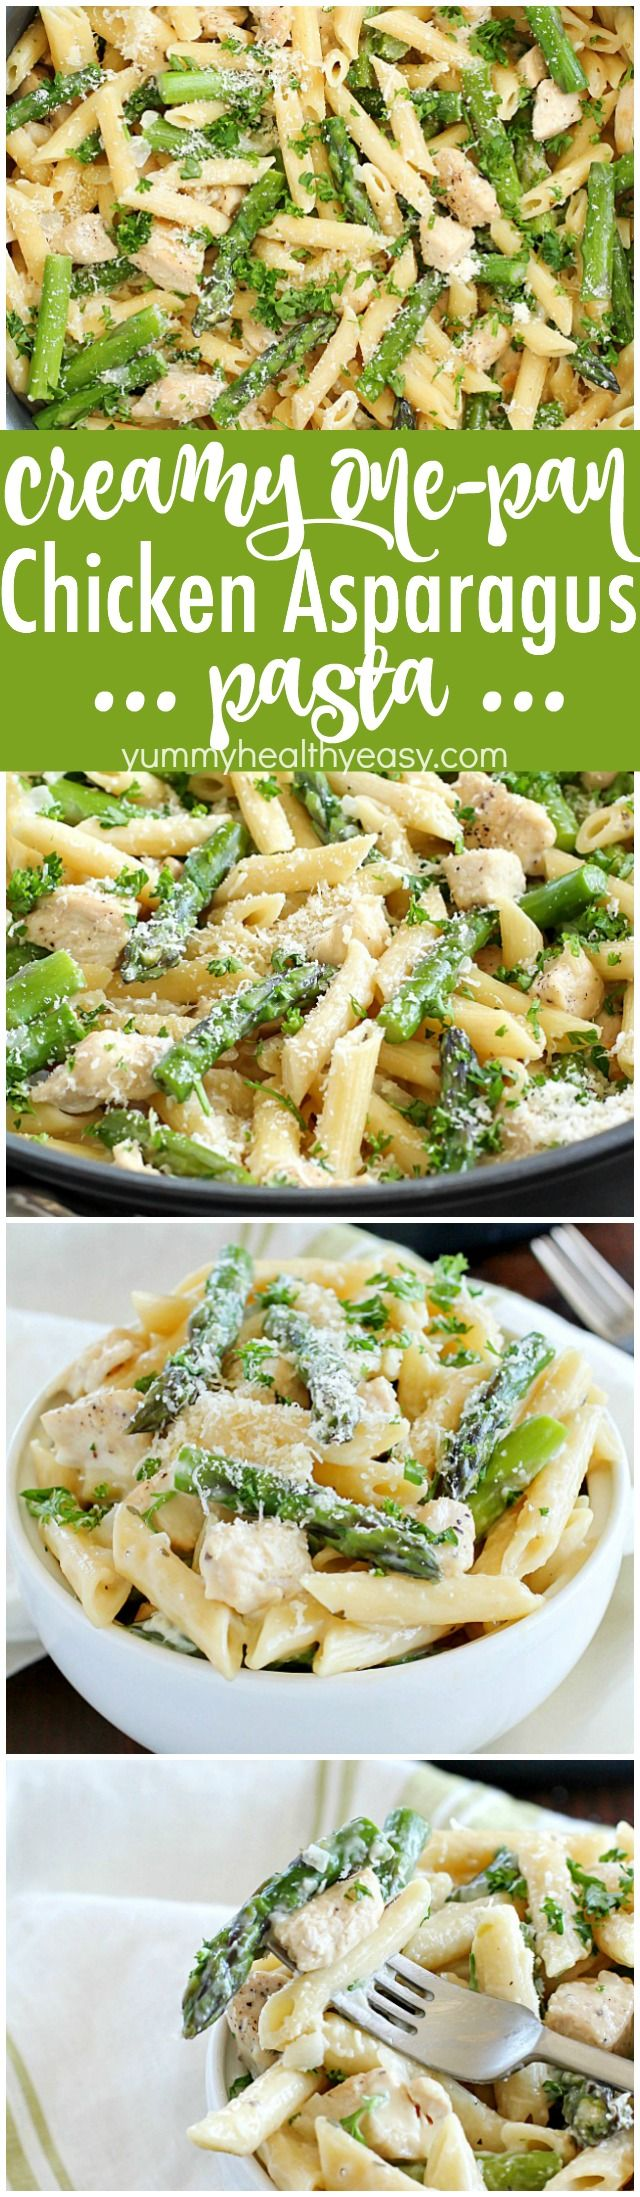 Creamy One-Pot Chicken Asparagus Pasta! Cooked in a creamy sauce and cooked from start to finish in only ONE pan. It's so simple and so easy plus the clean up is a breeze. It's perfect for spring and (One Pan Italian Chicken)